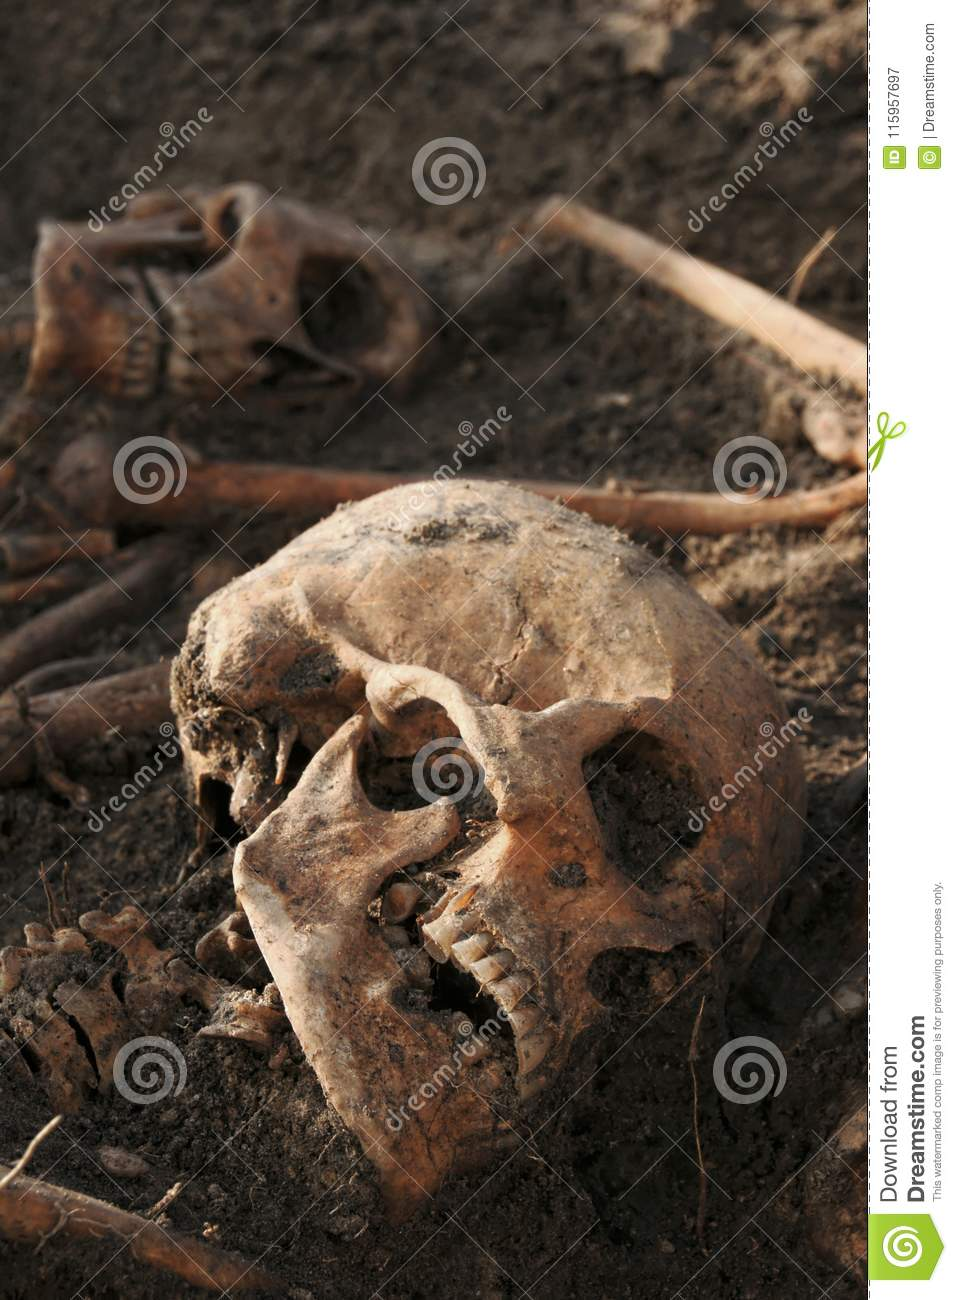 Human remains excavated: close up of two skeletons with skulls